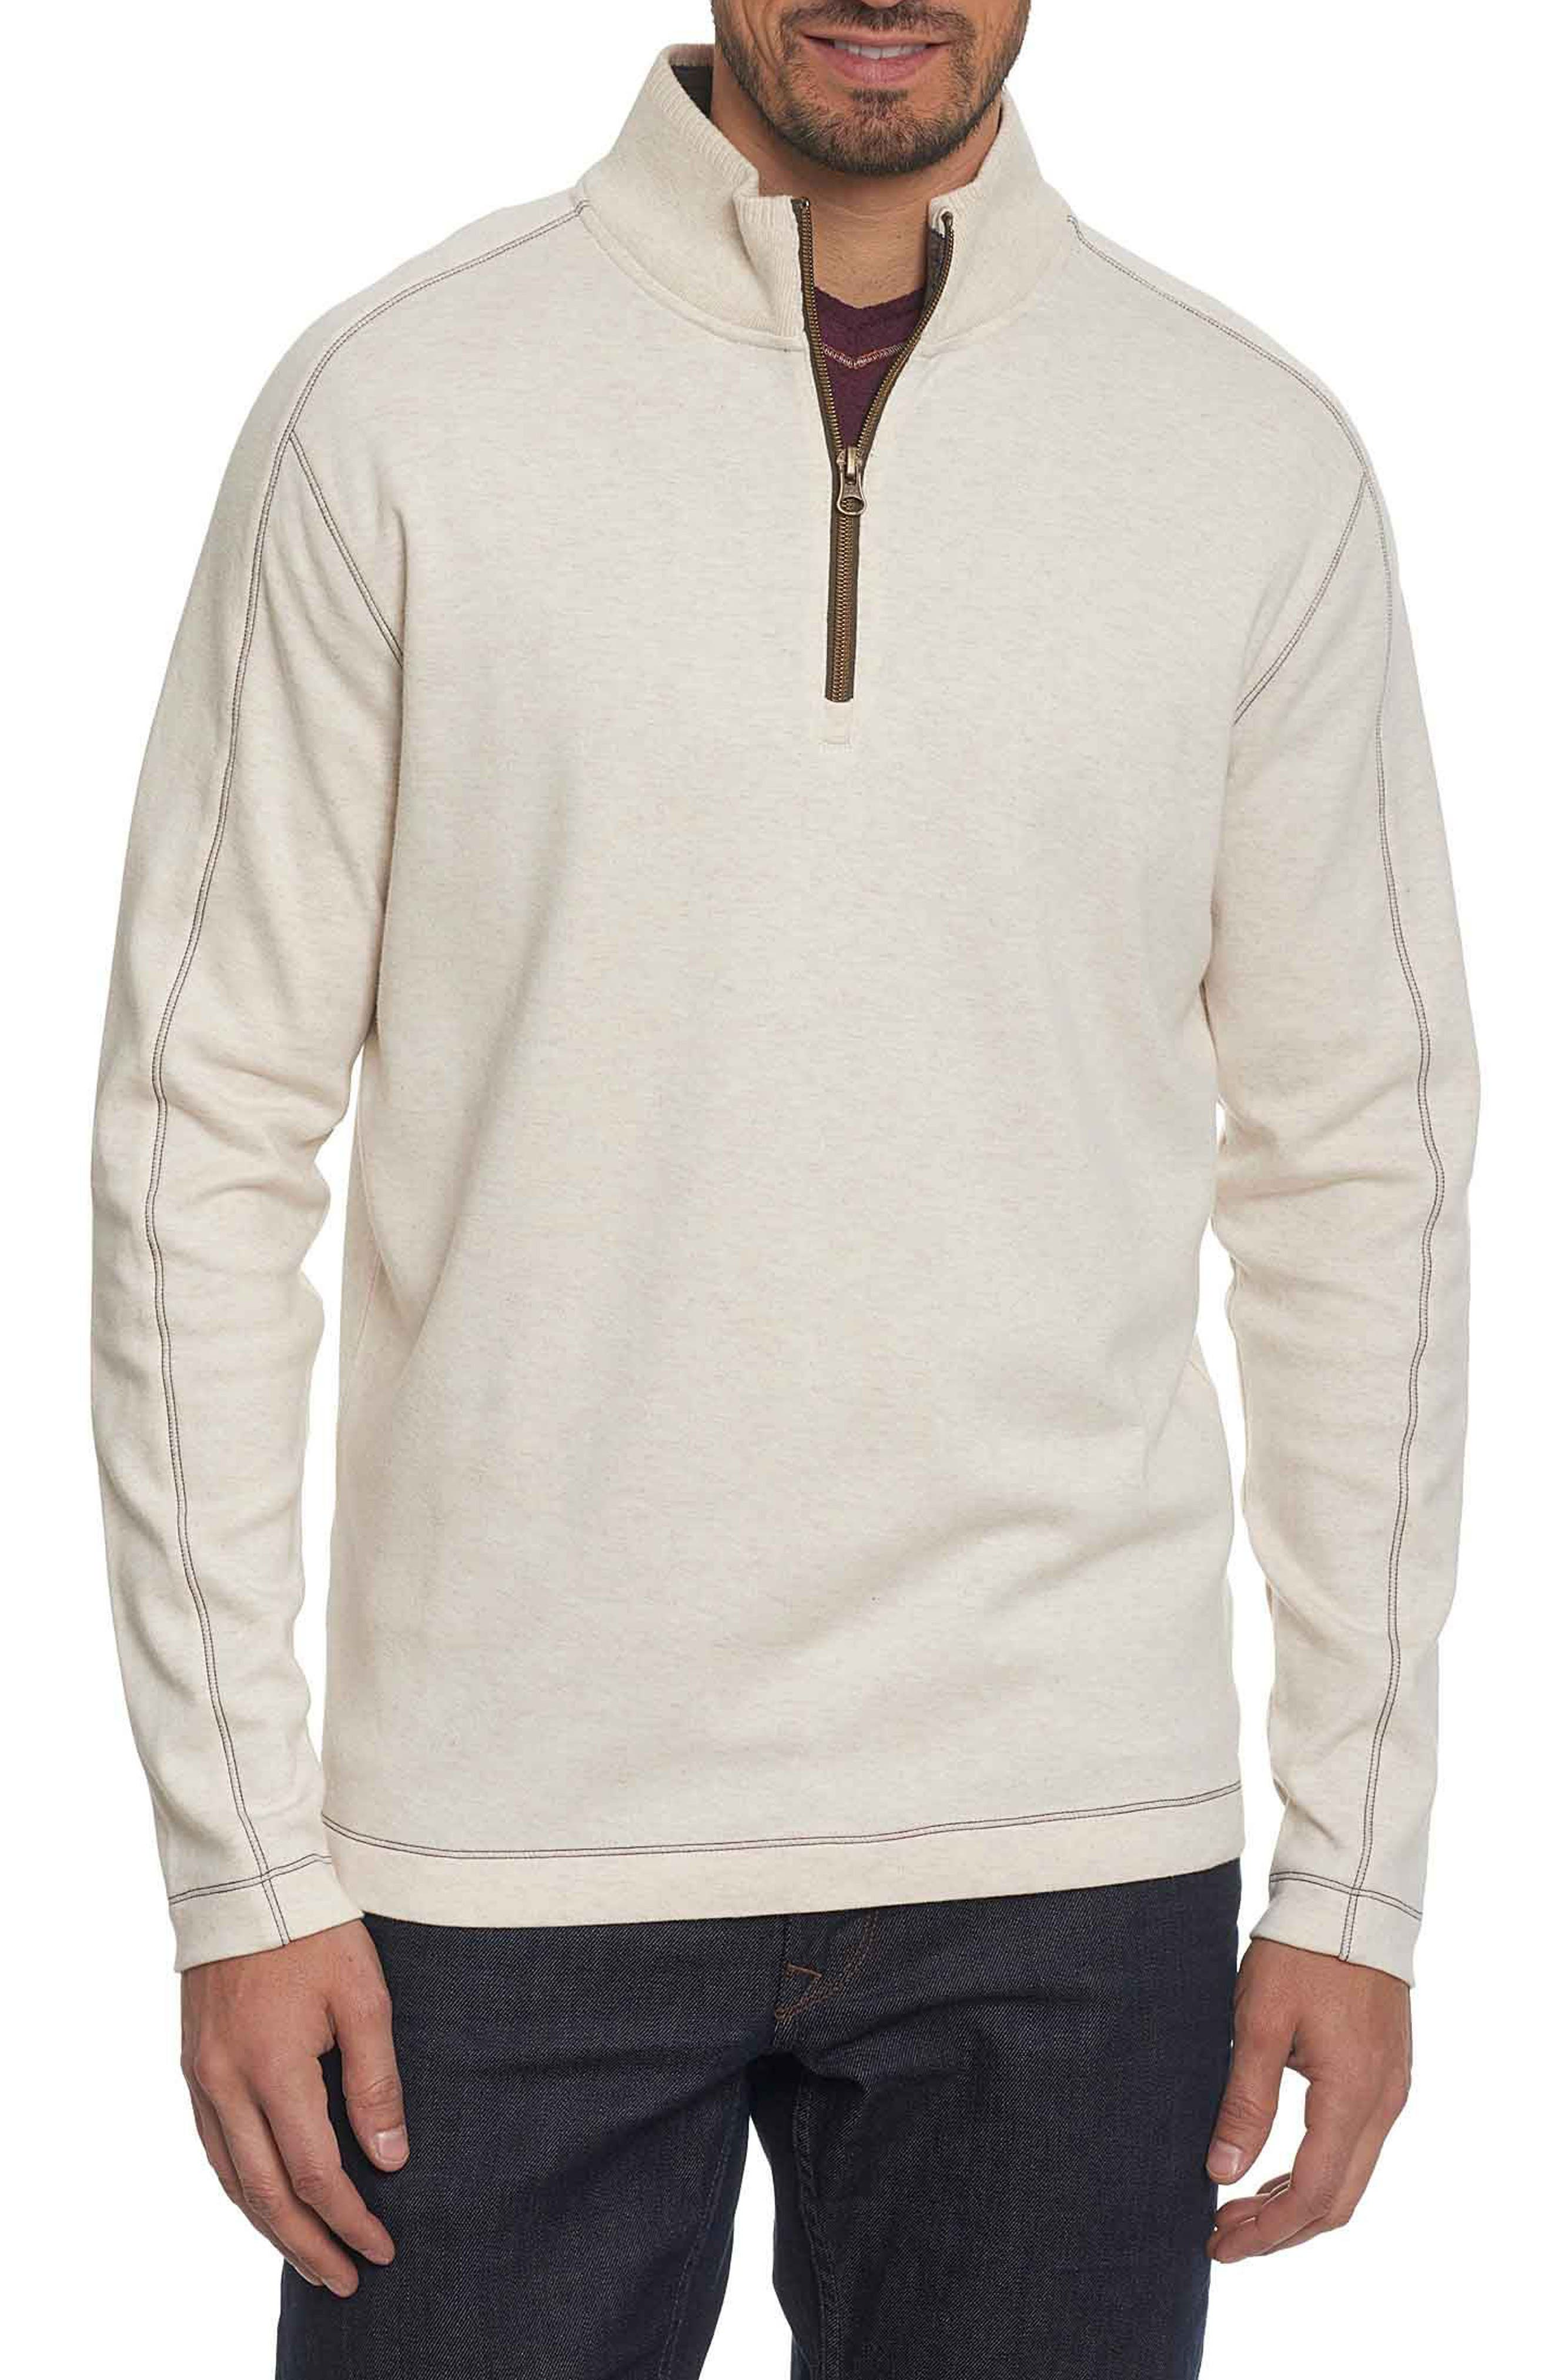 'Elia' Regular Fit Quarter Zip Pullover,                         Main,                         color, 113